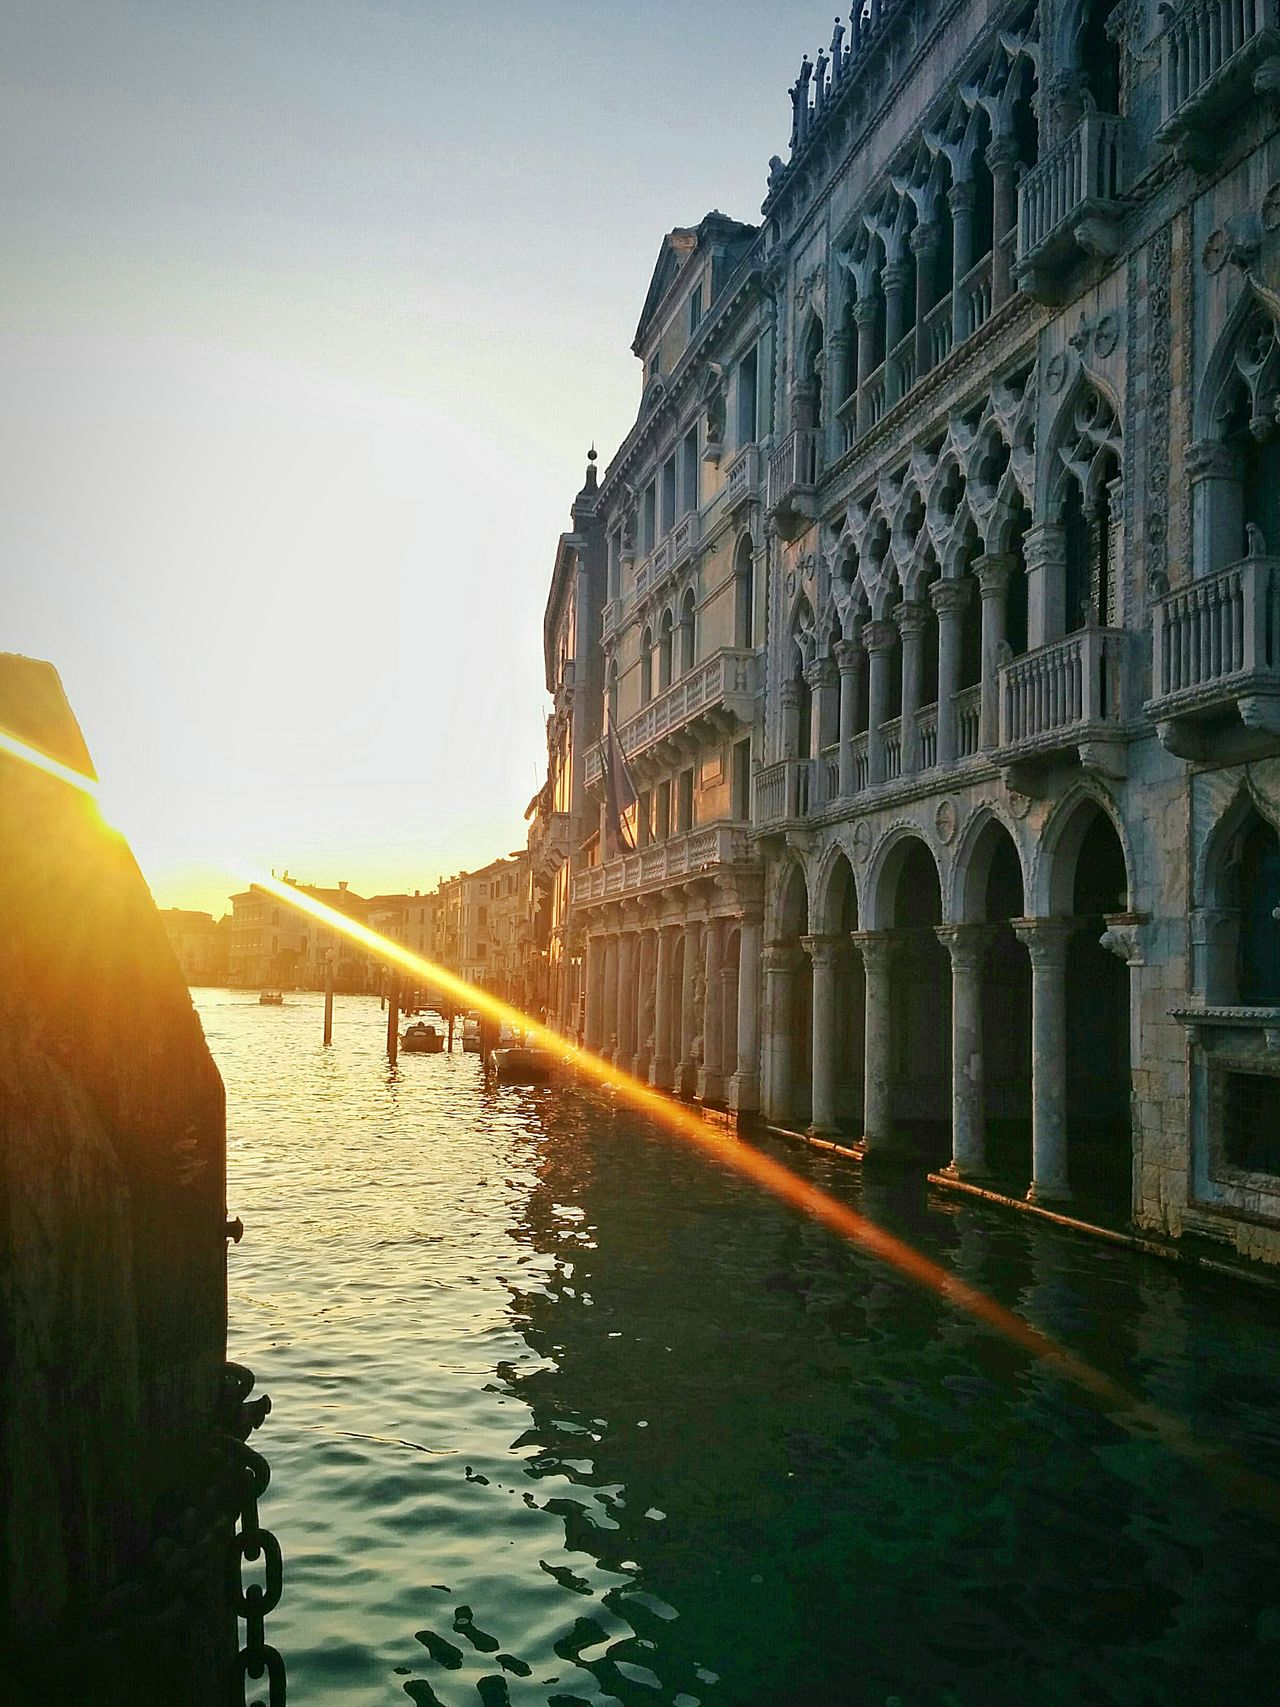 43 Golden Moments golden hour Enjoying Life travel Venice Palace canal Sunset lenses